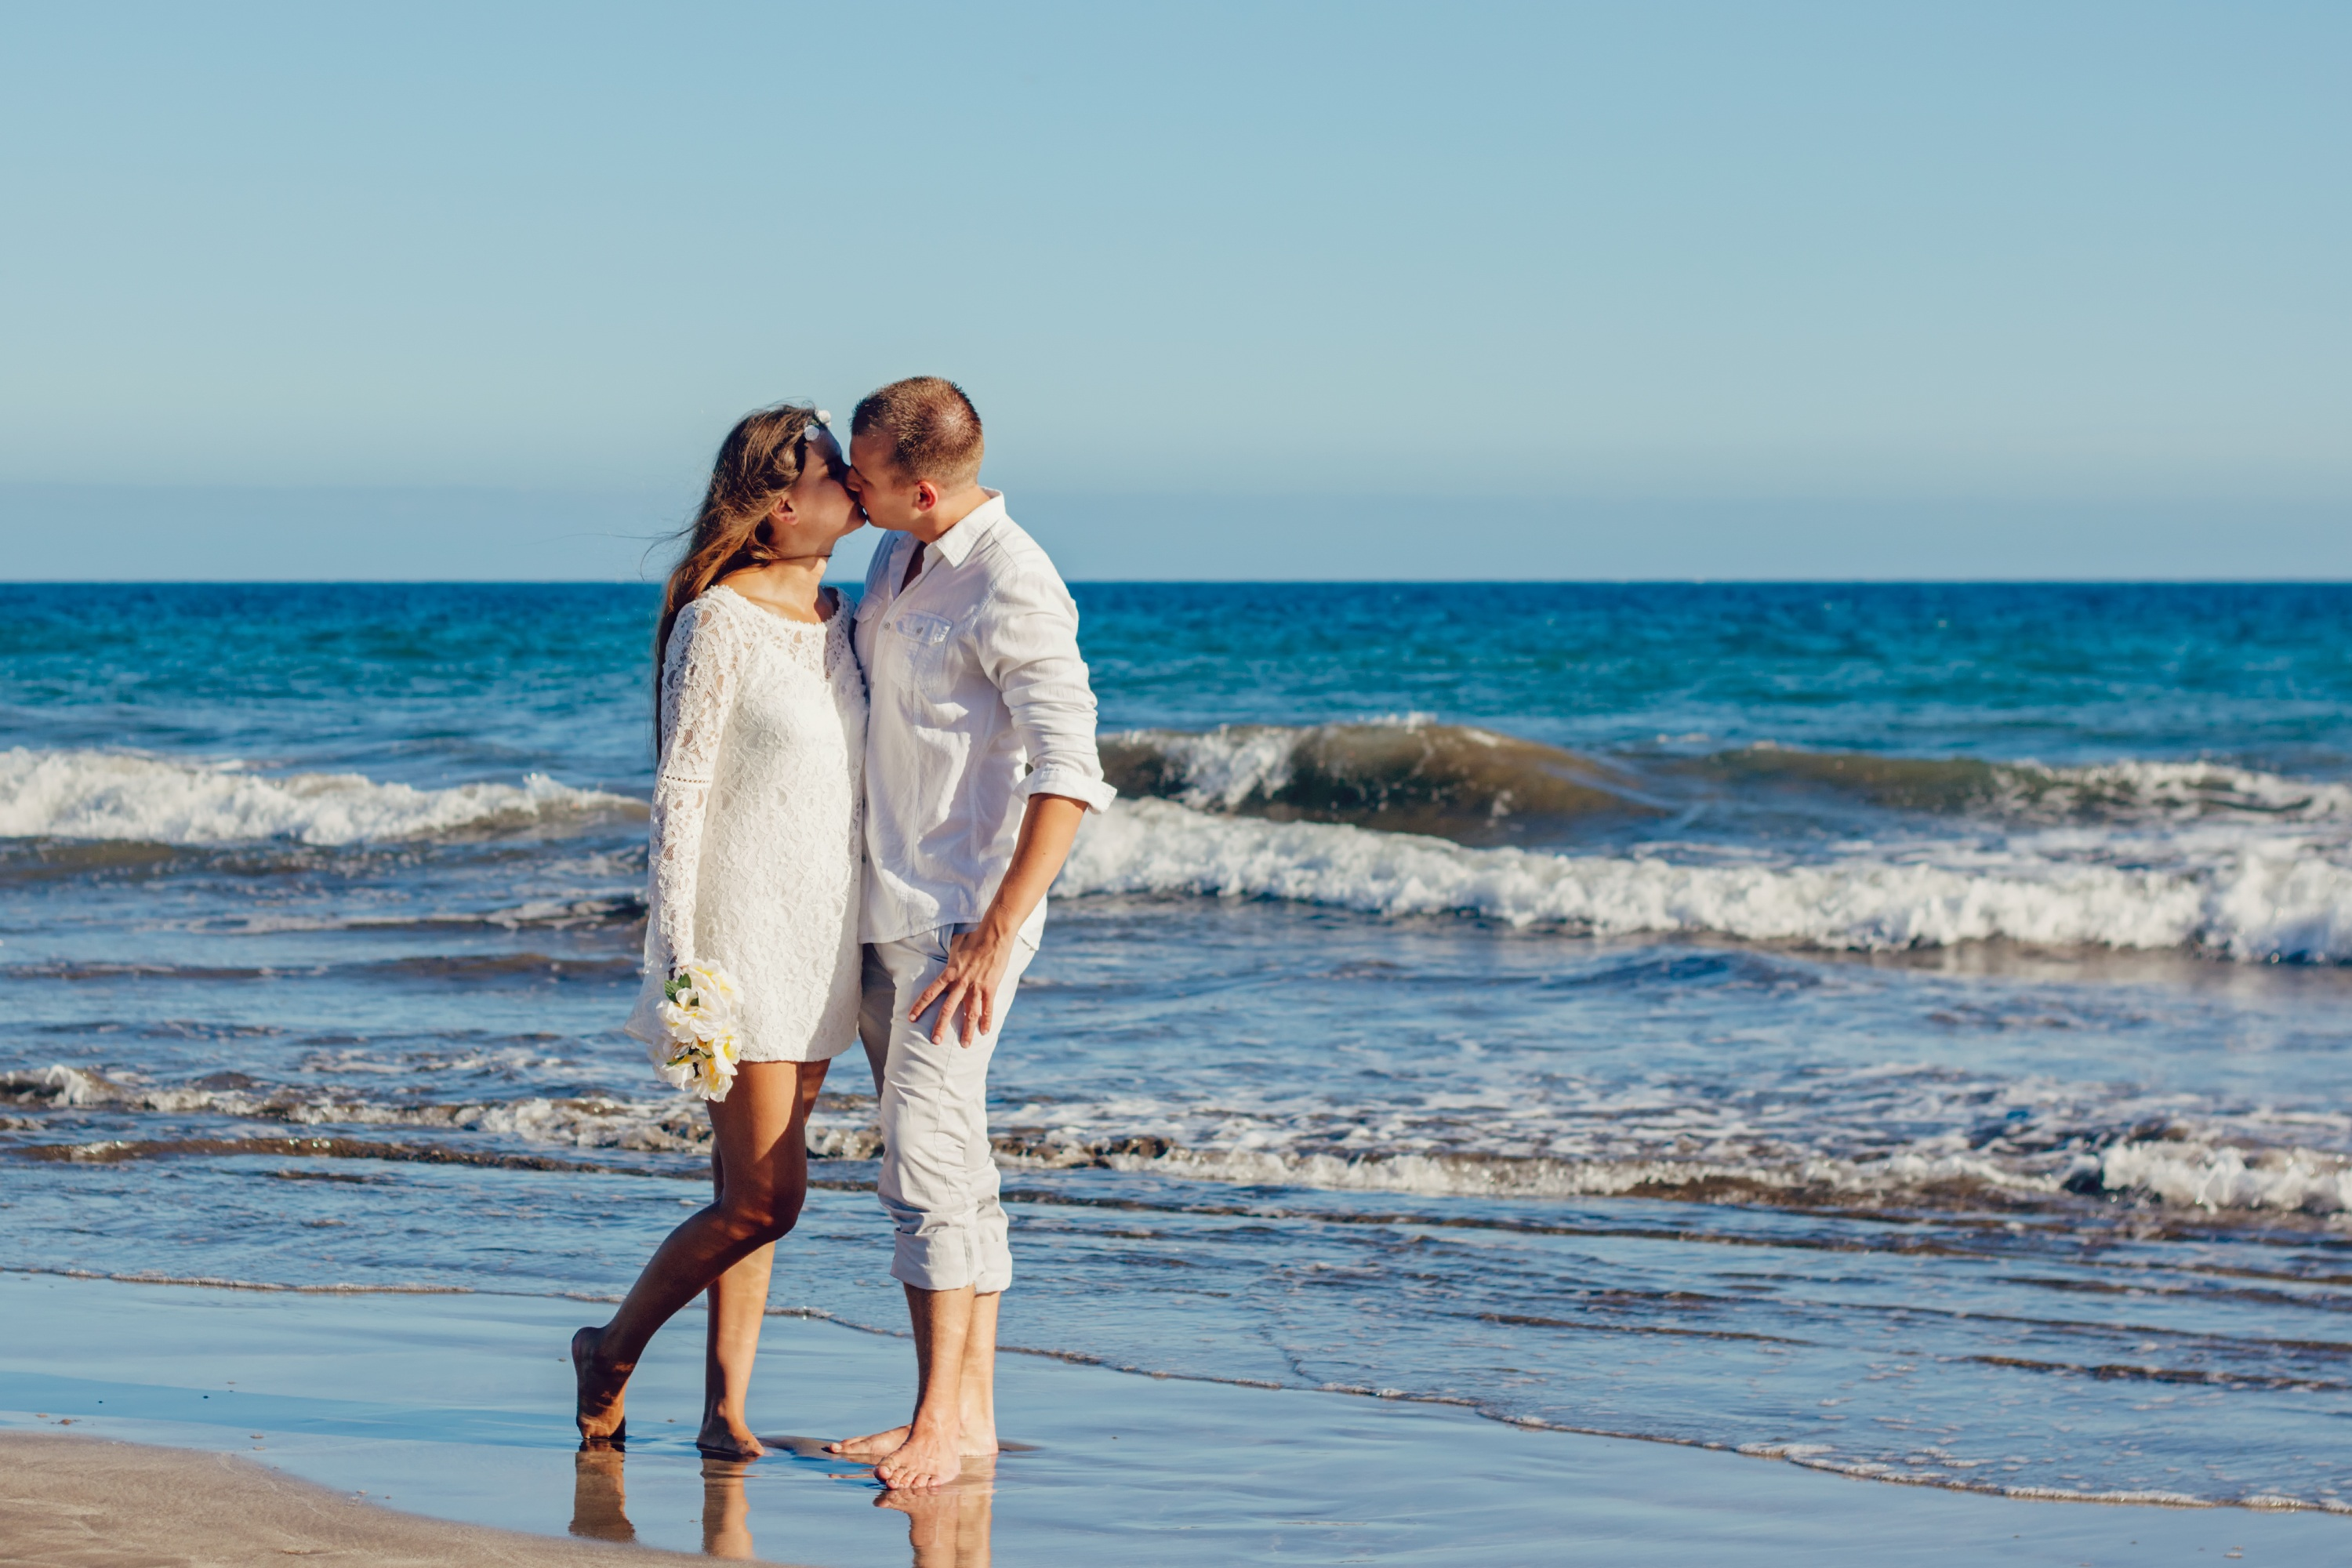 summer love: proposal ideas for your beach vacation | adiamor